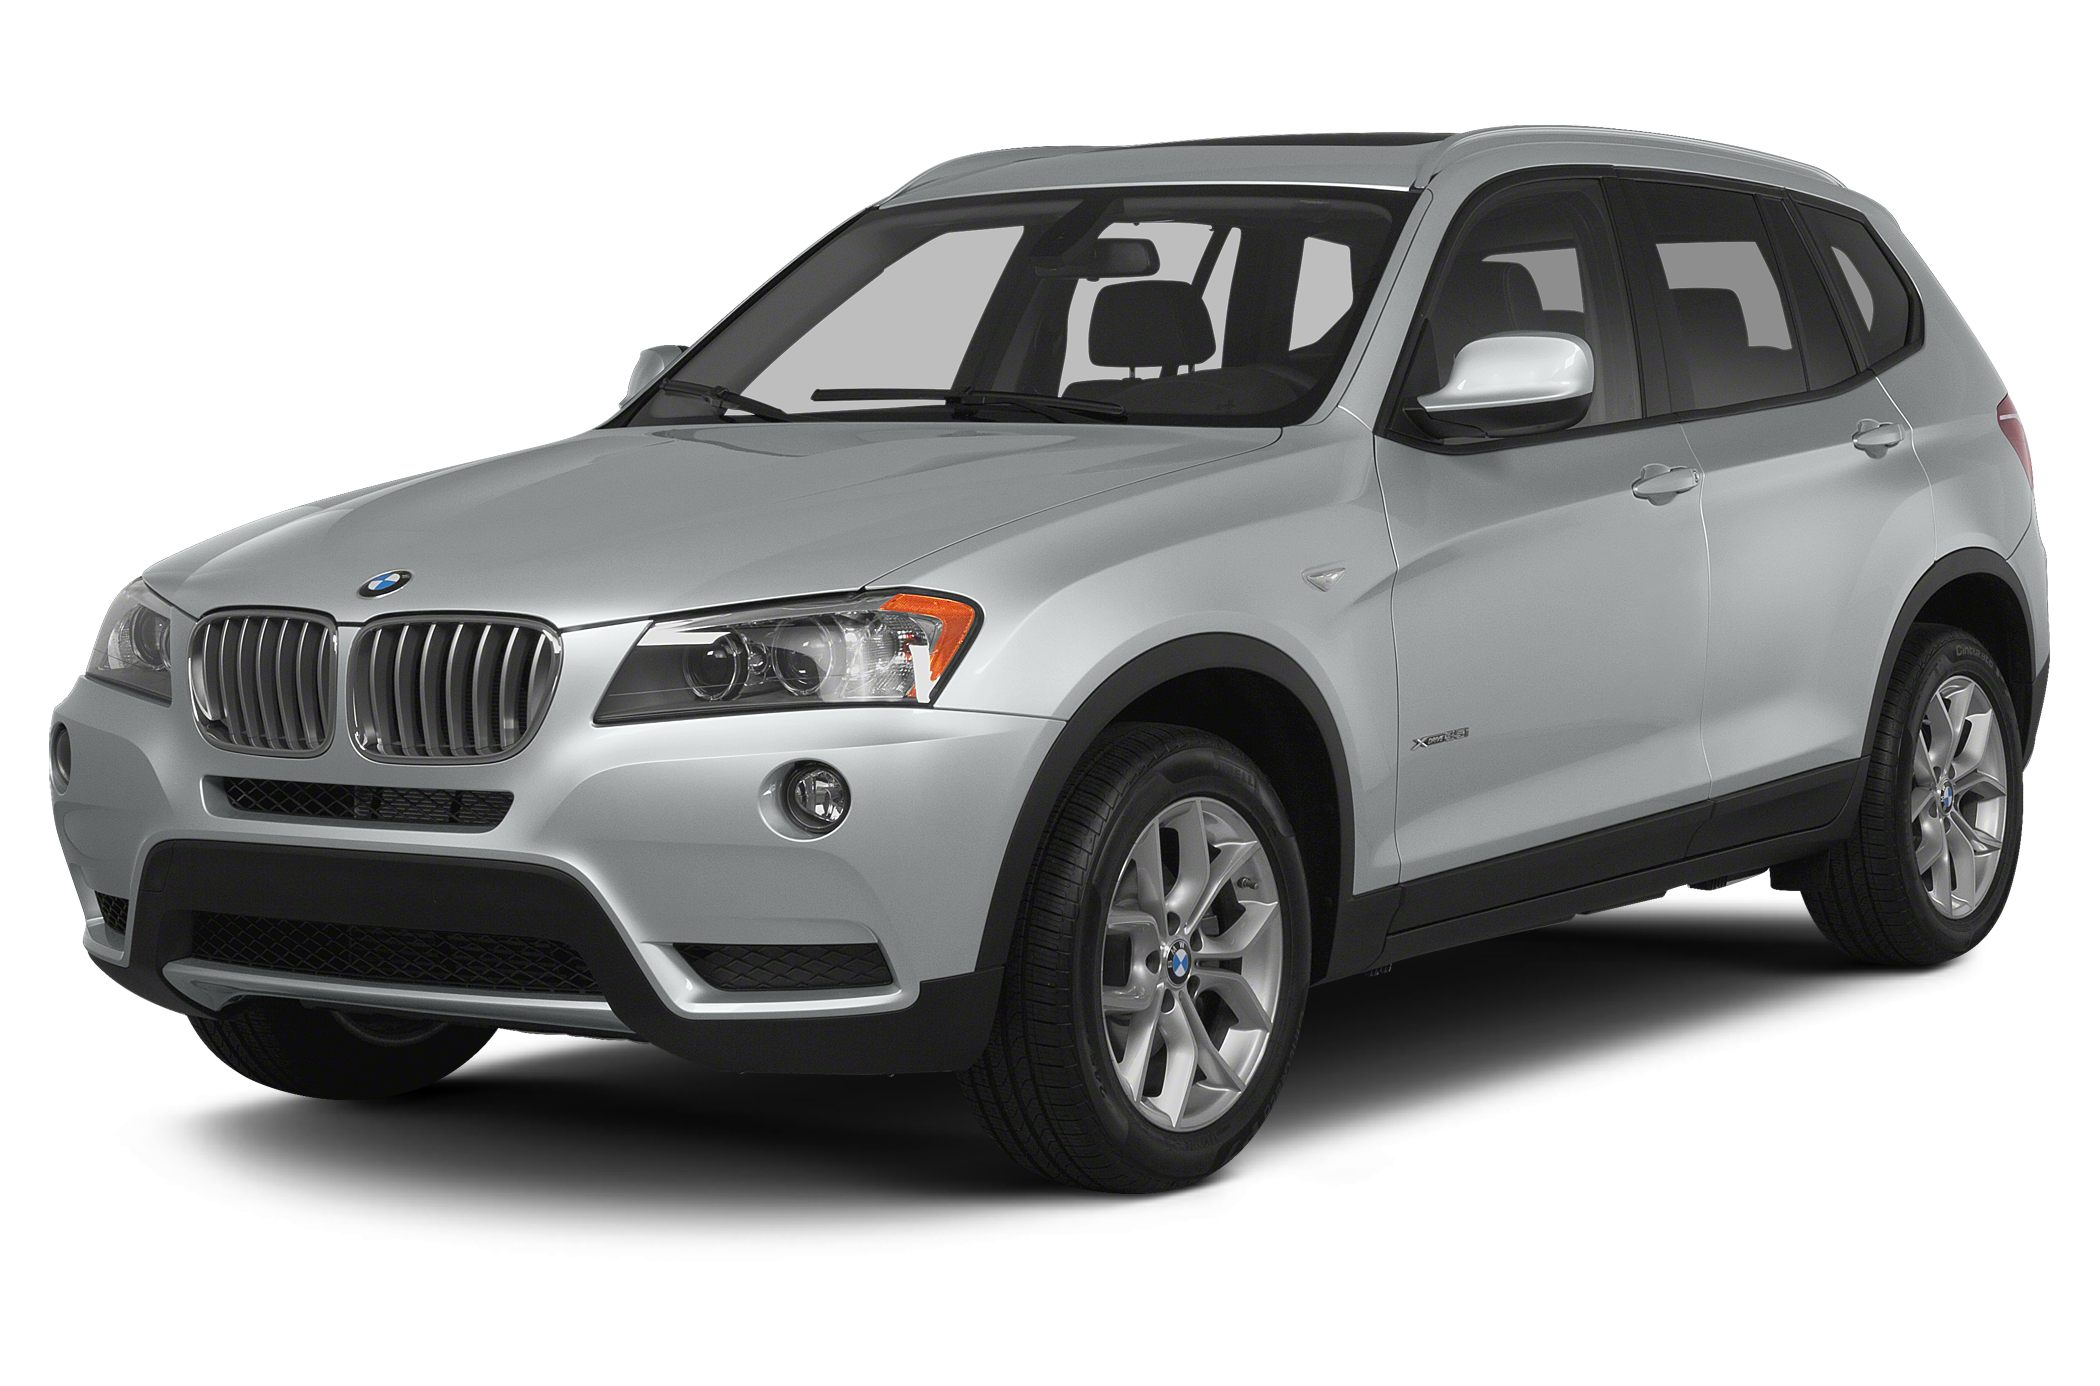 2014 BMW X3 XDrive28i SUV for sale in Tampa for $42,976 with 10,312 miles.